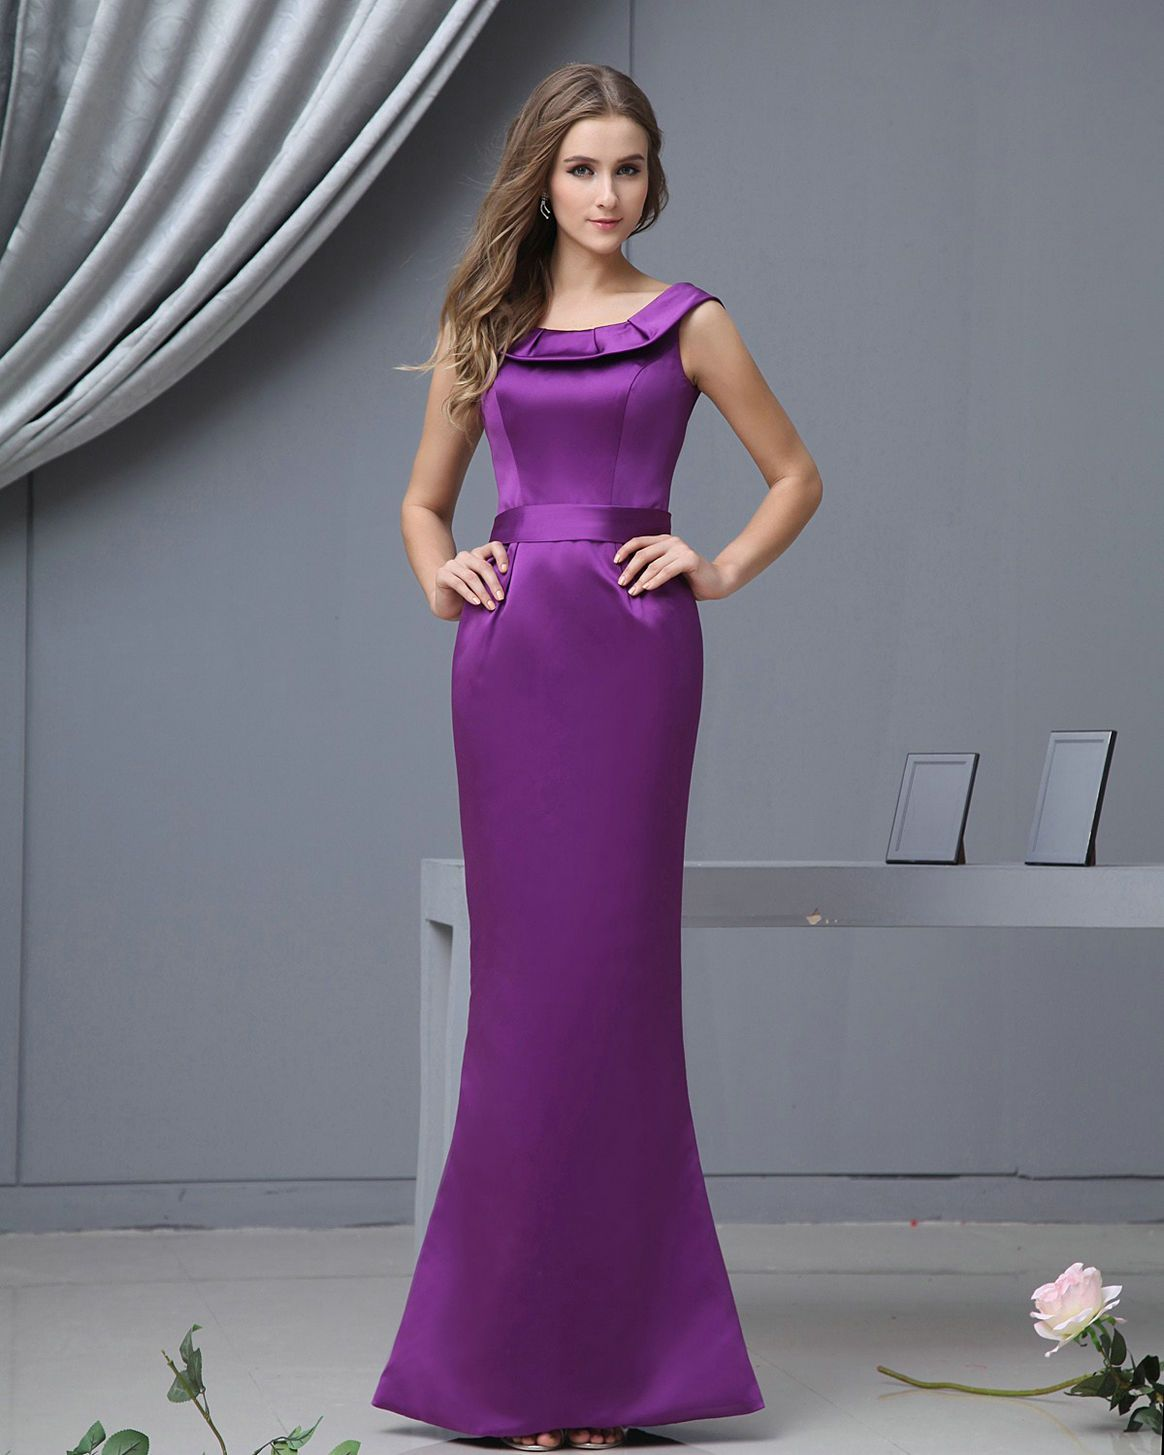 Stunning purple and lavender couture evening gowns bridesmaid stunning purple and lavender couture evening gowns bridesmaid dresses girls bridesmaid dresses ombrellifo Gallery